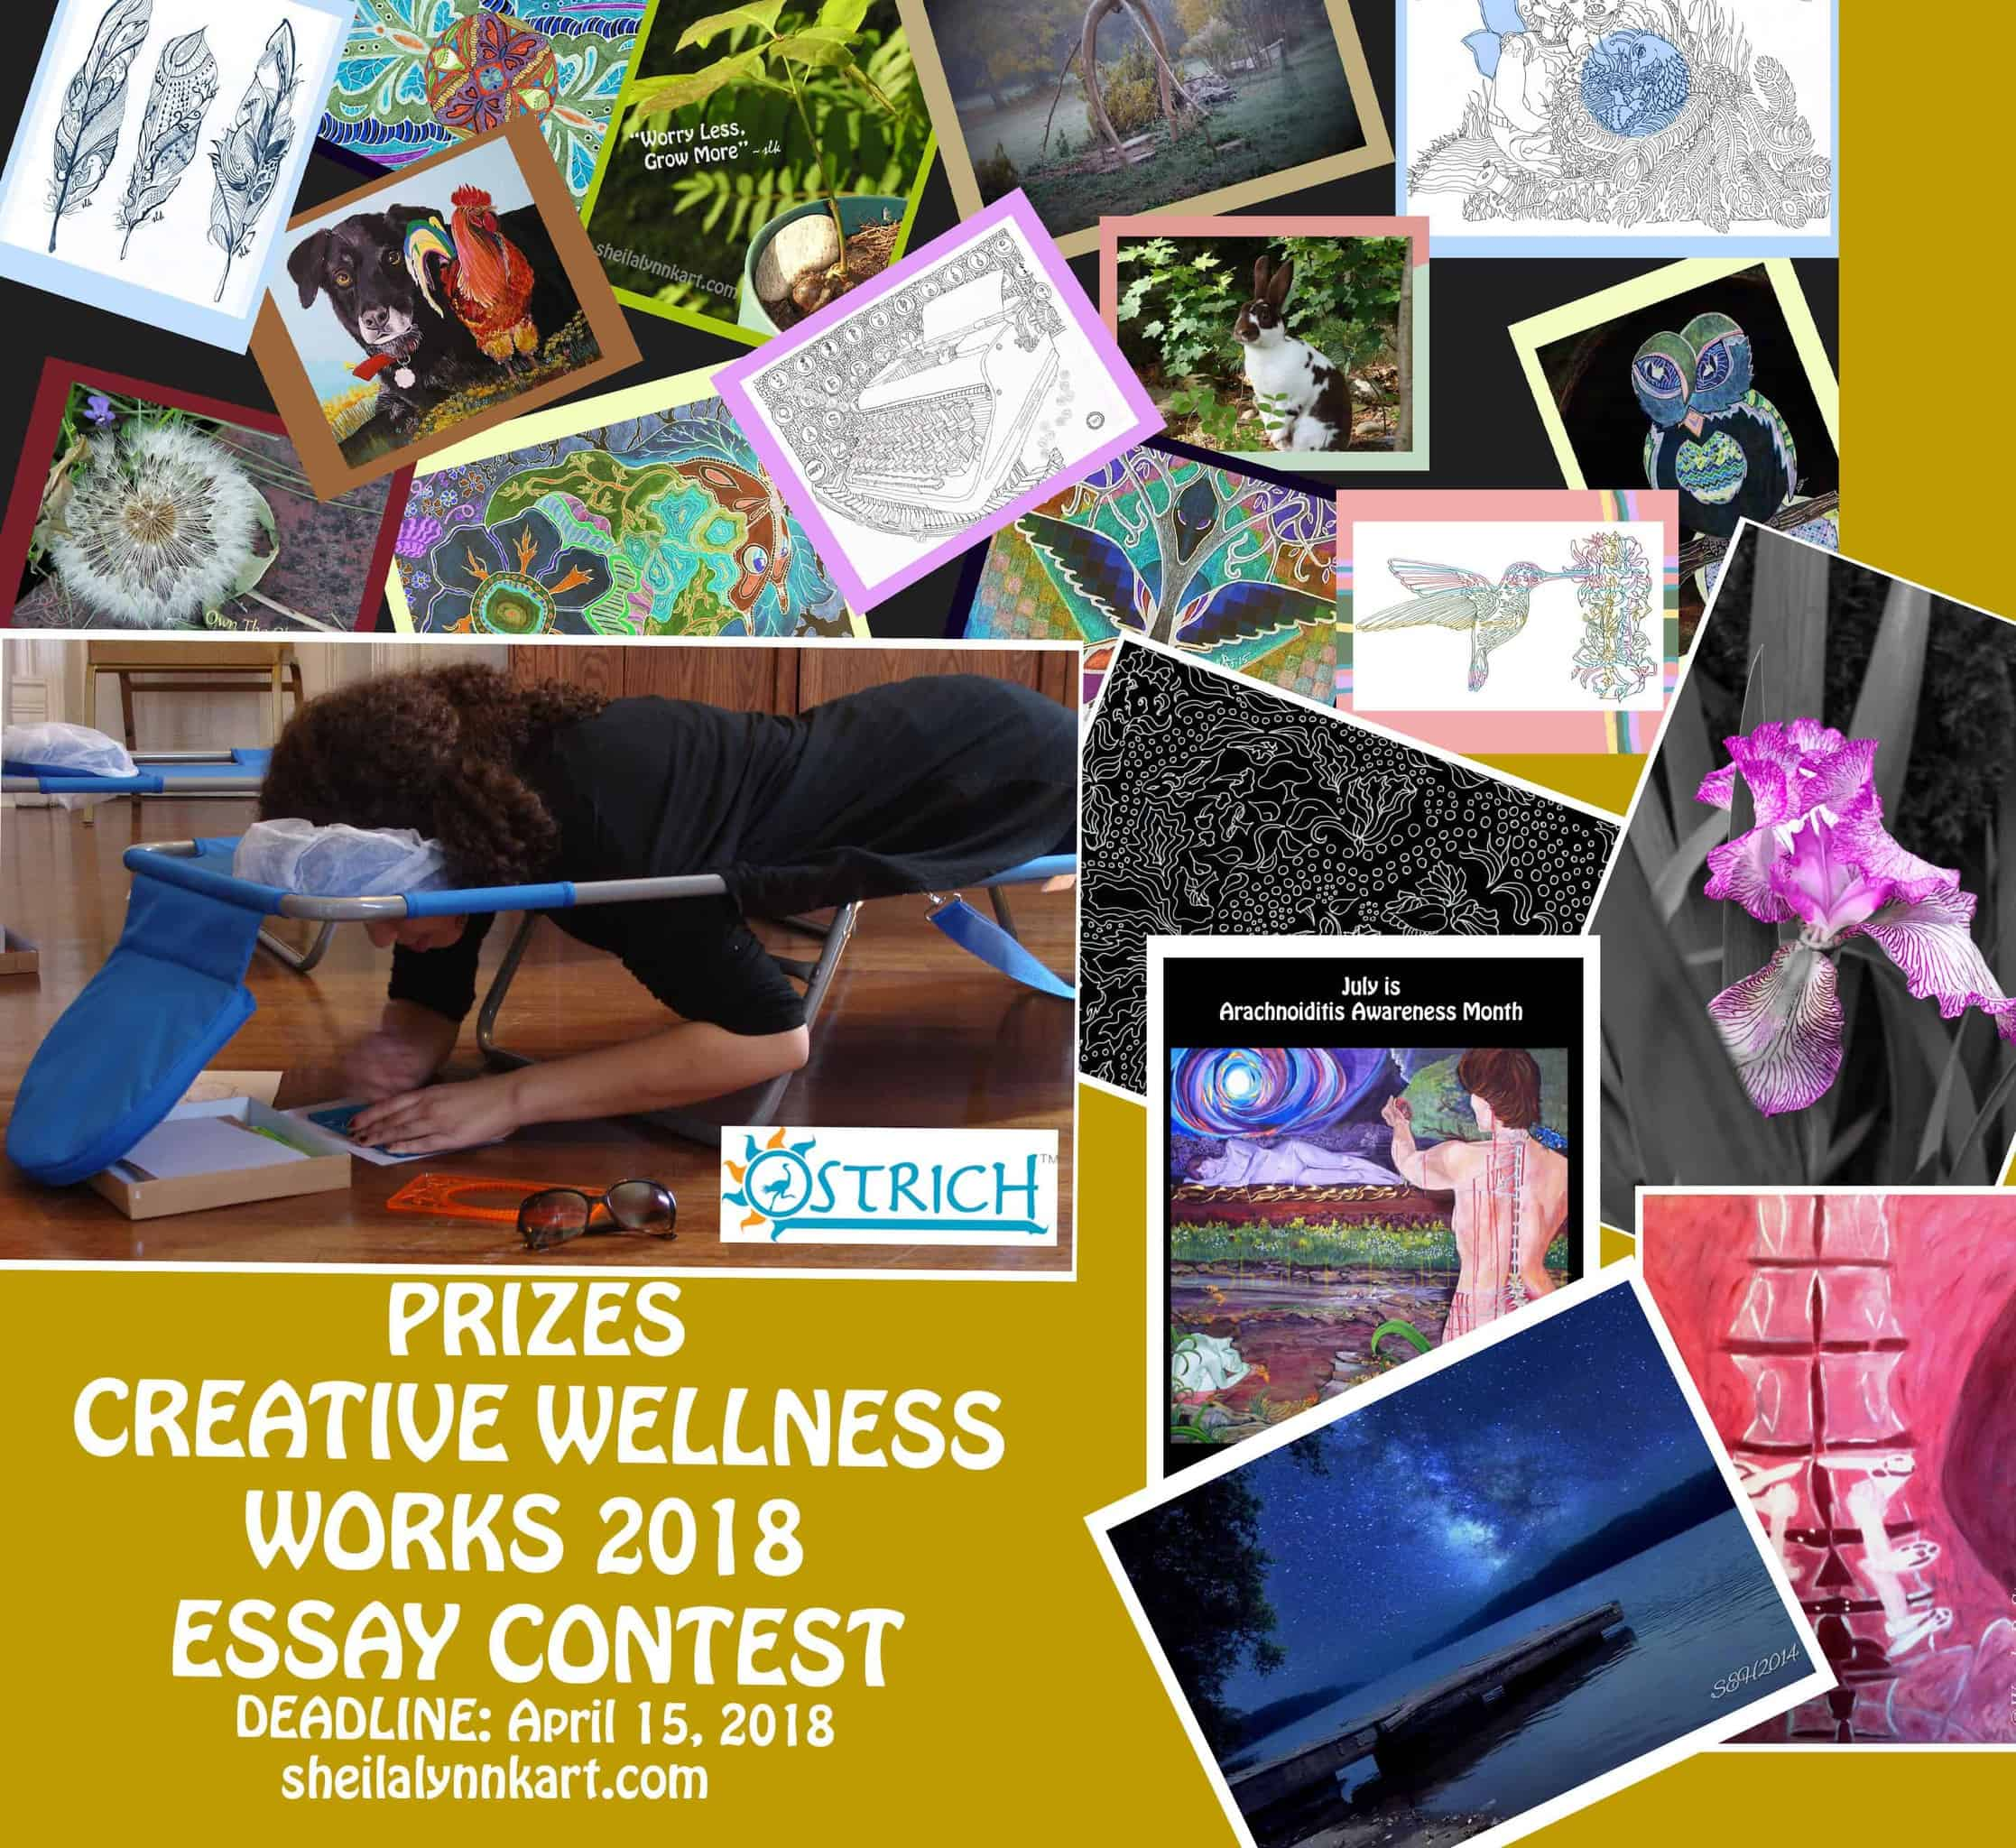 How do you get creative in your pursuit of wellness? Tell us about it for a chance to win prizes. Pr